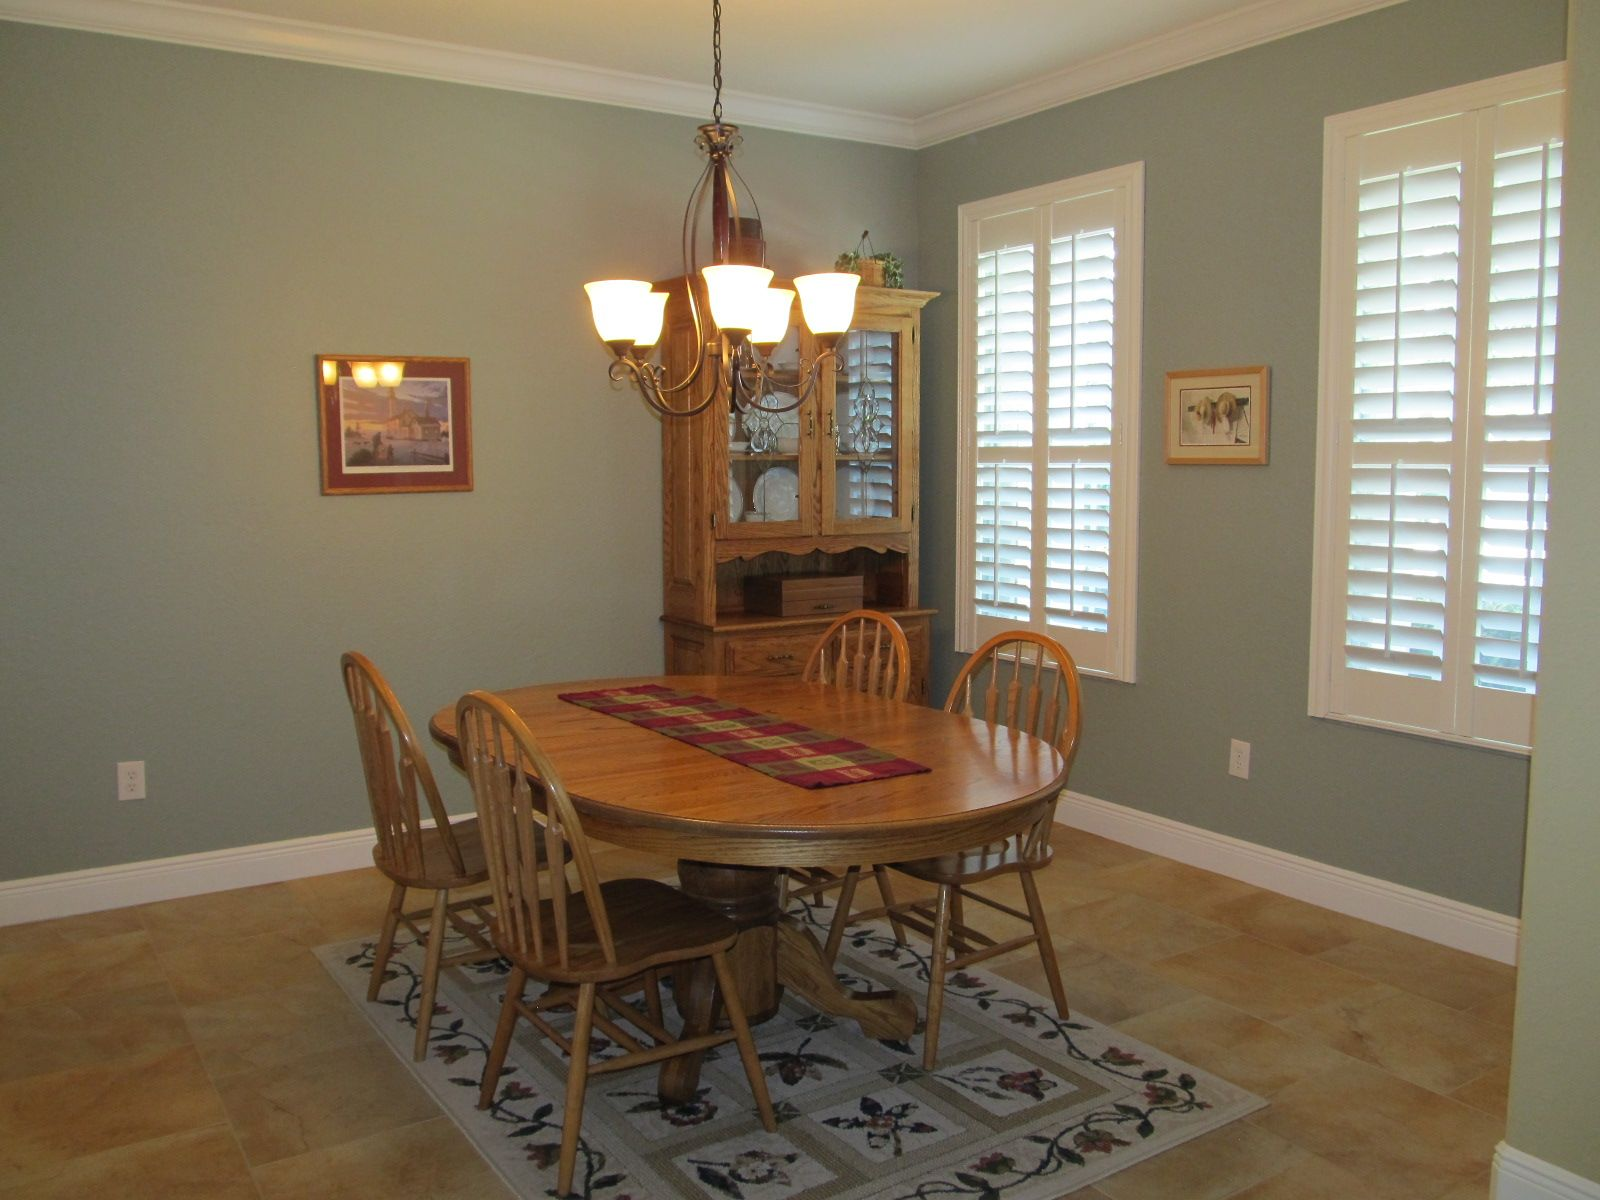 Kitchen Dining Room Paint Colors Painting Cabinet Ideas Sherwin Williams 39 Escape Grey We Bought This For Our